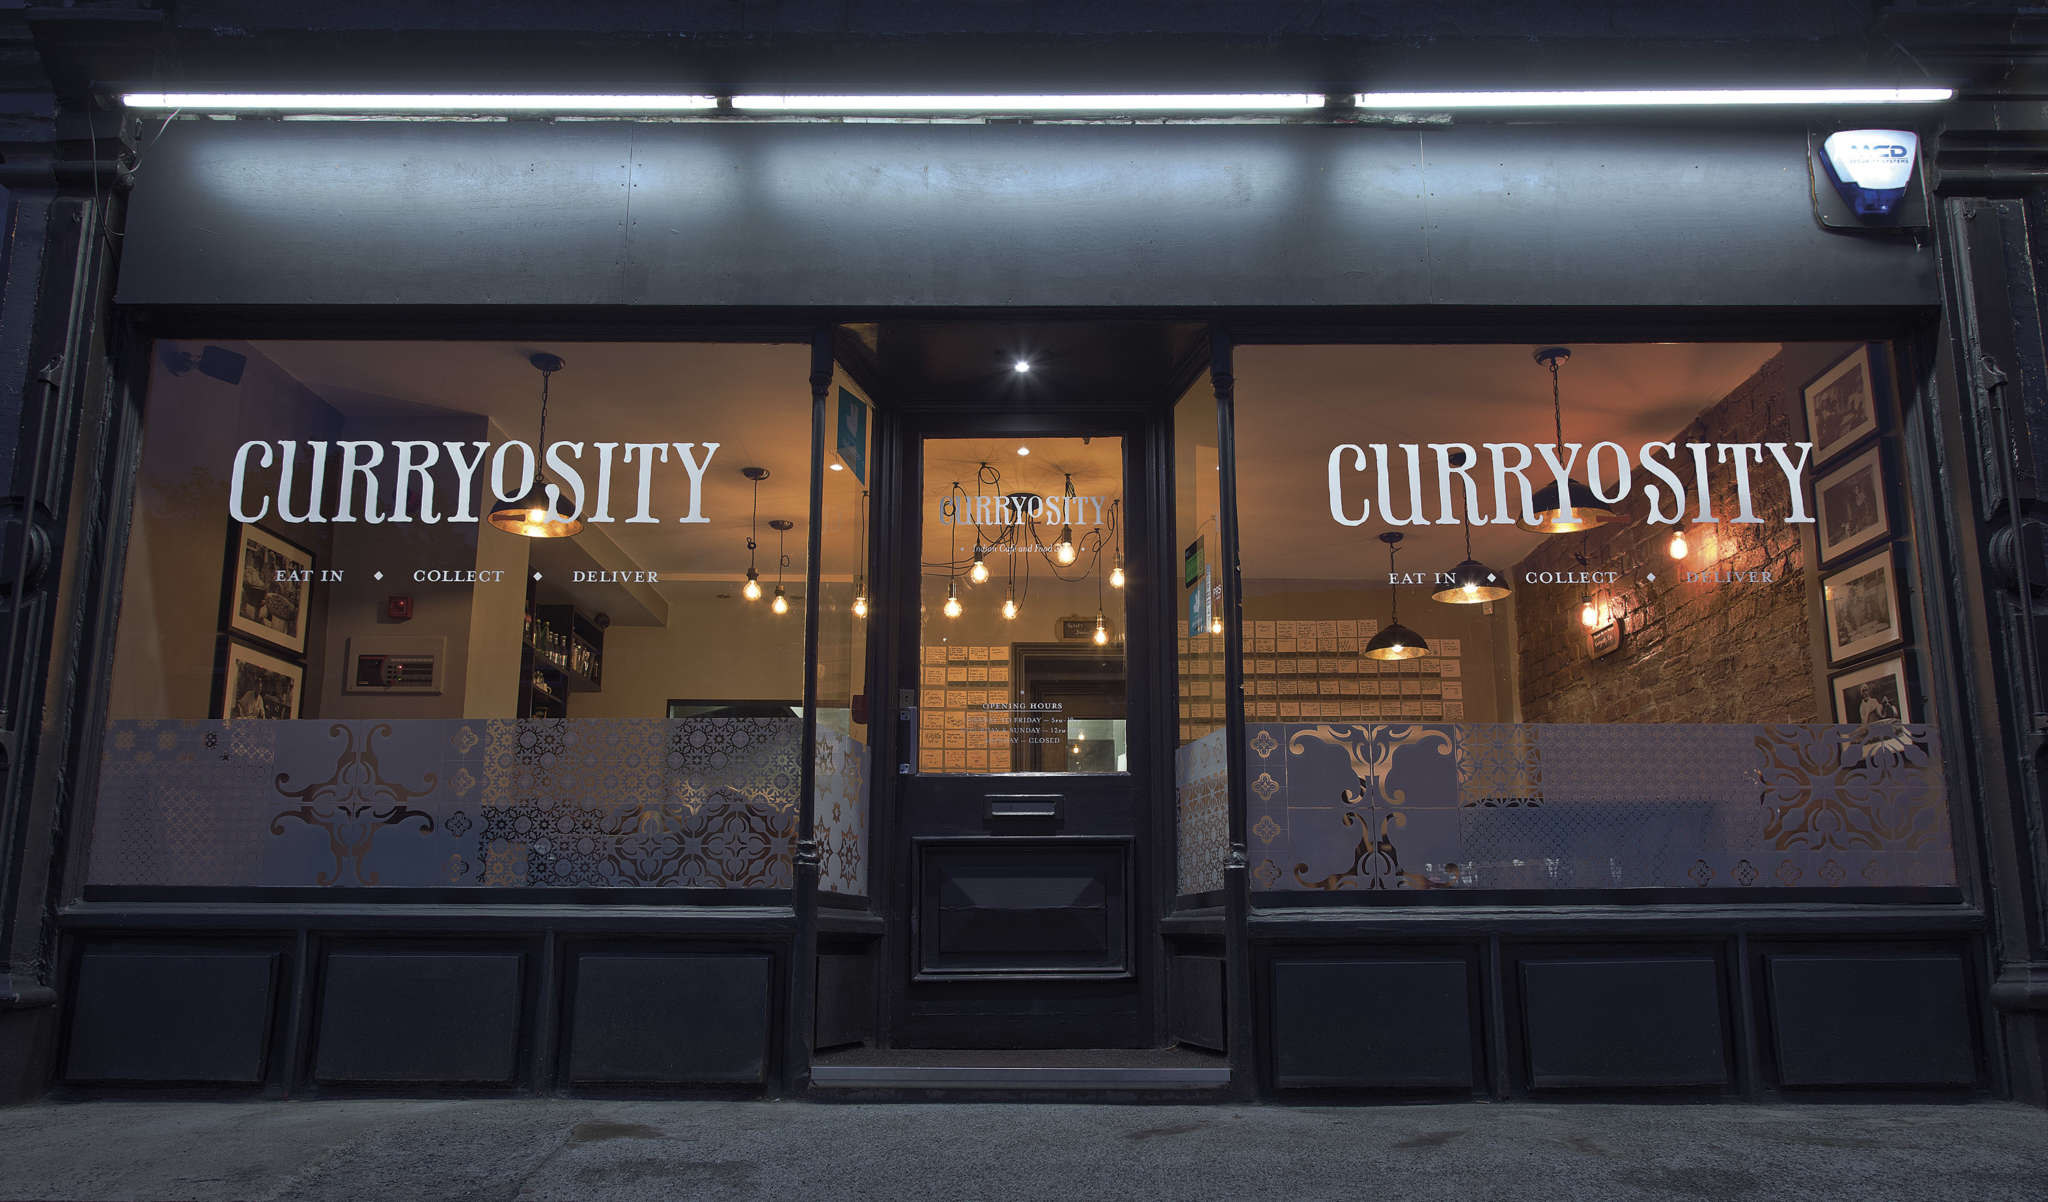 Curryosity Exterior 1